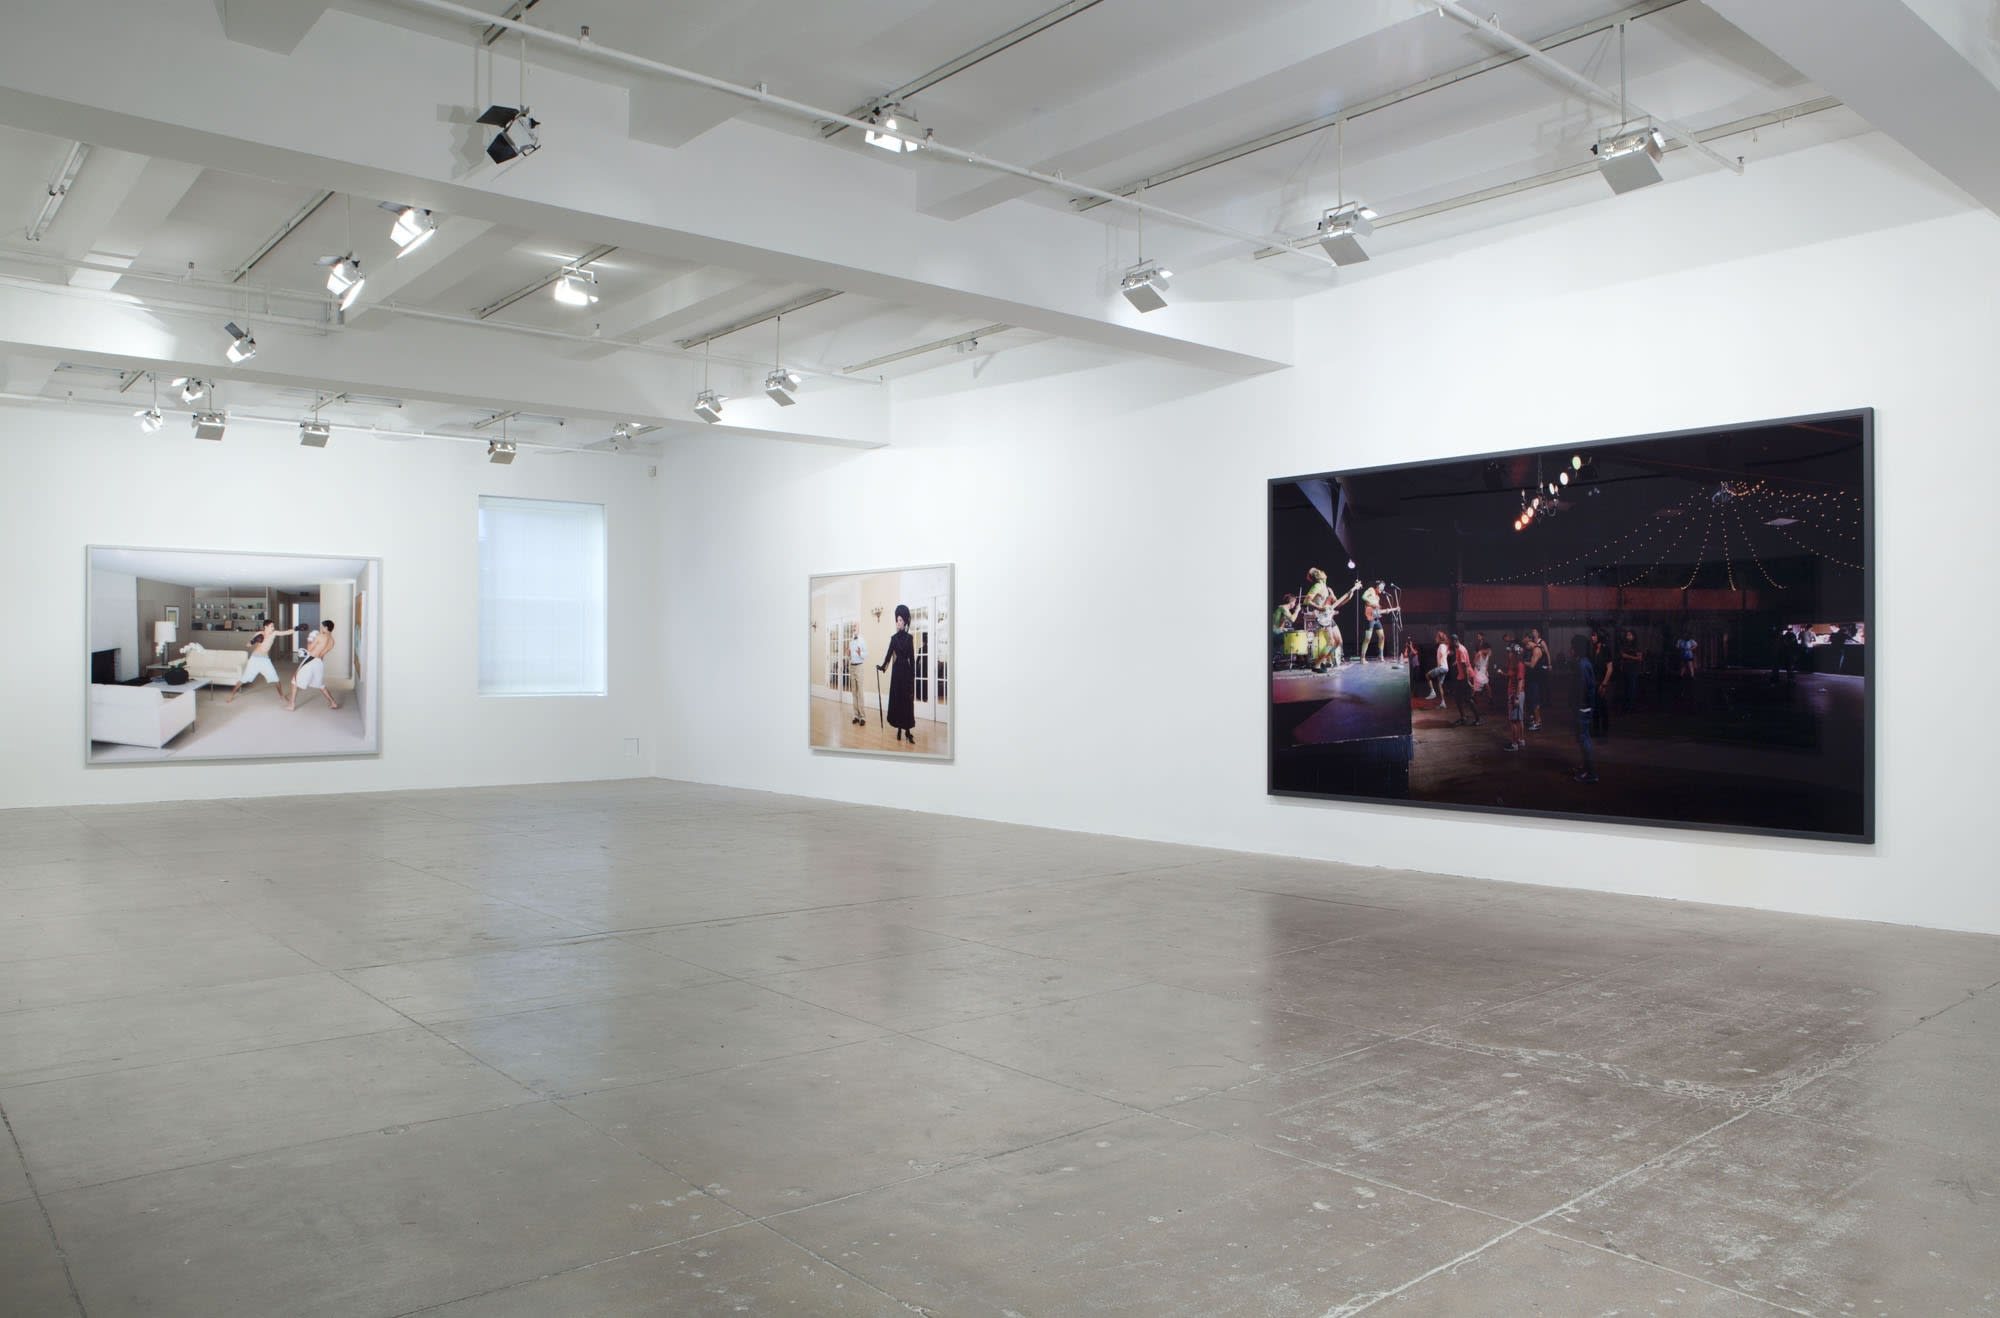 An image of two boys boxing, an image of an elegant woman dressed in black and an nighttime image of an outdoor concert are displayed in a white room.